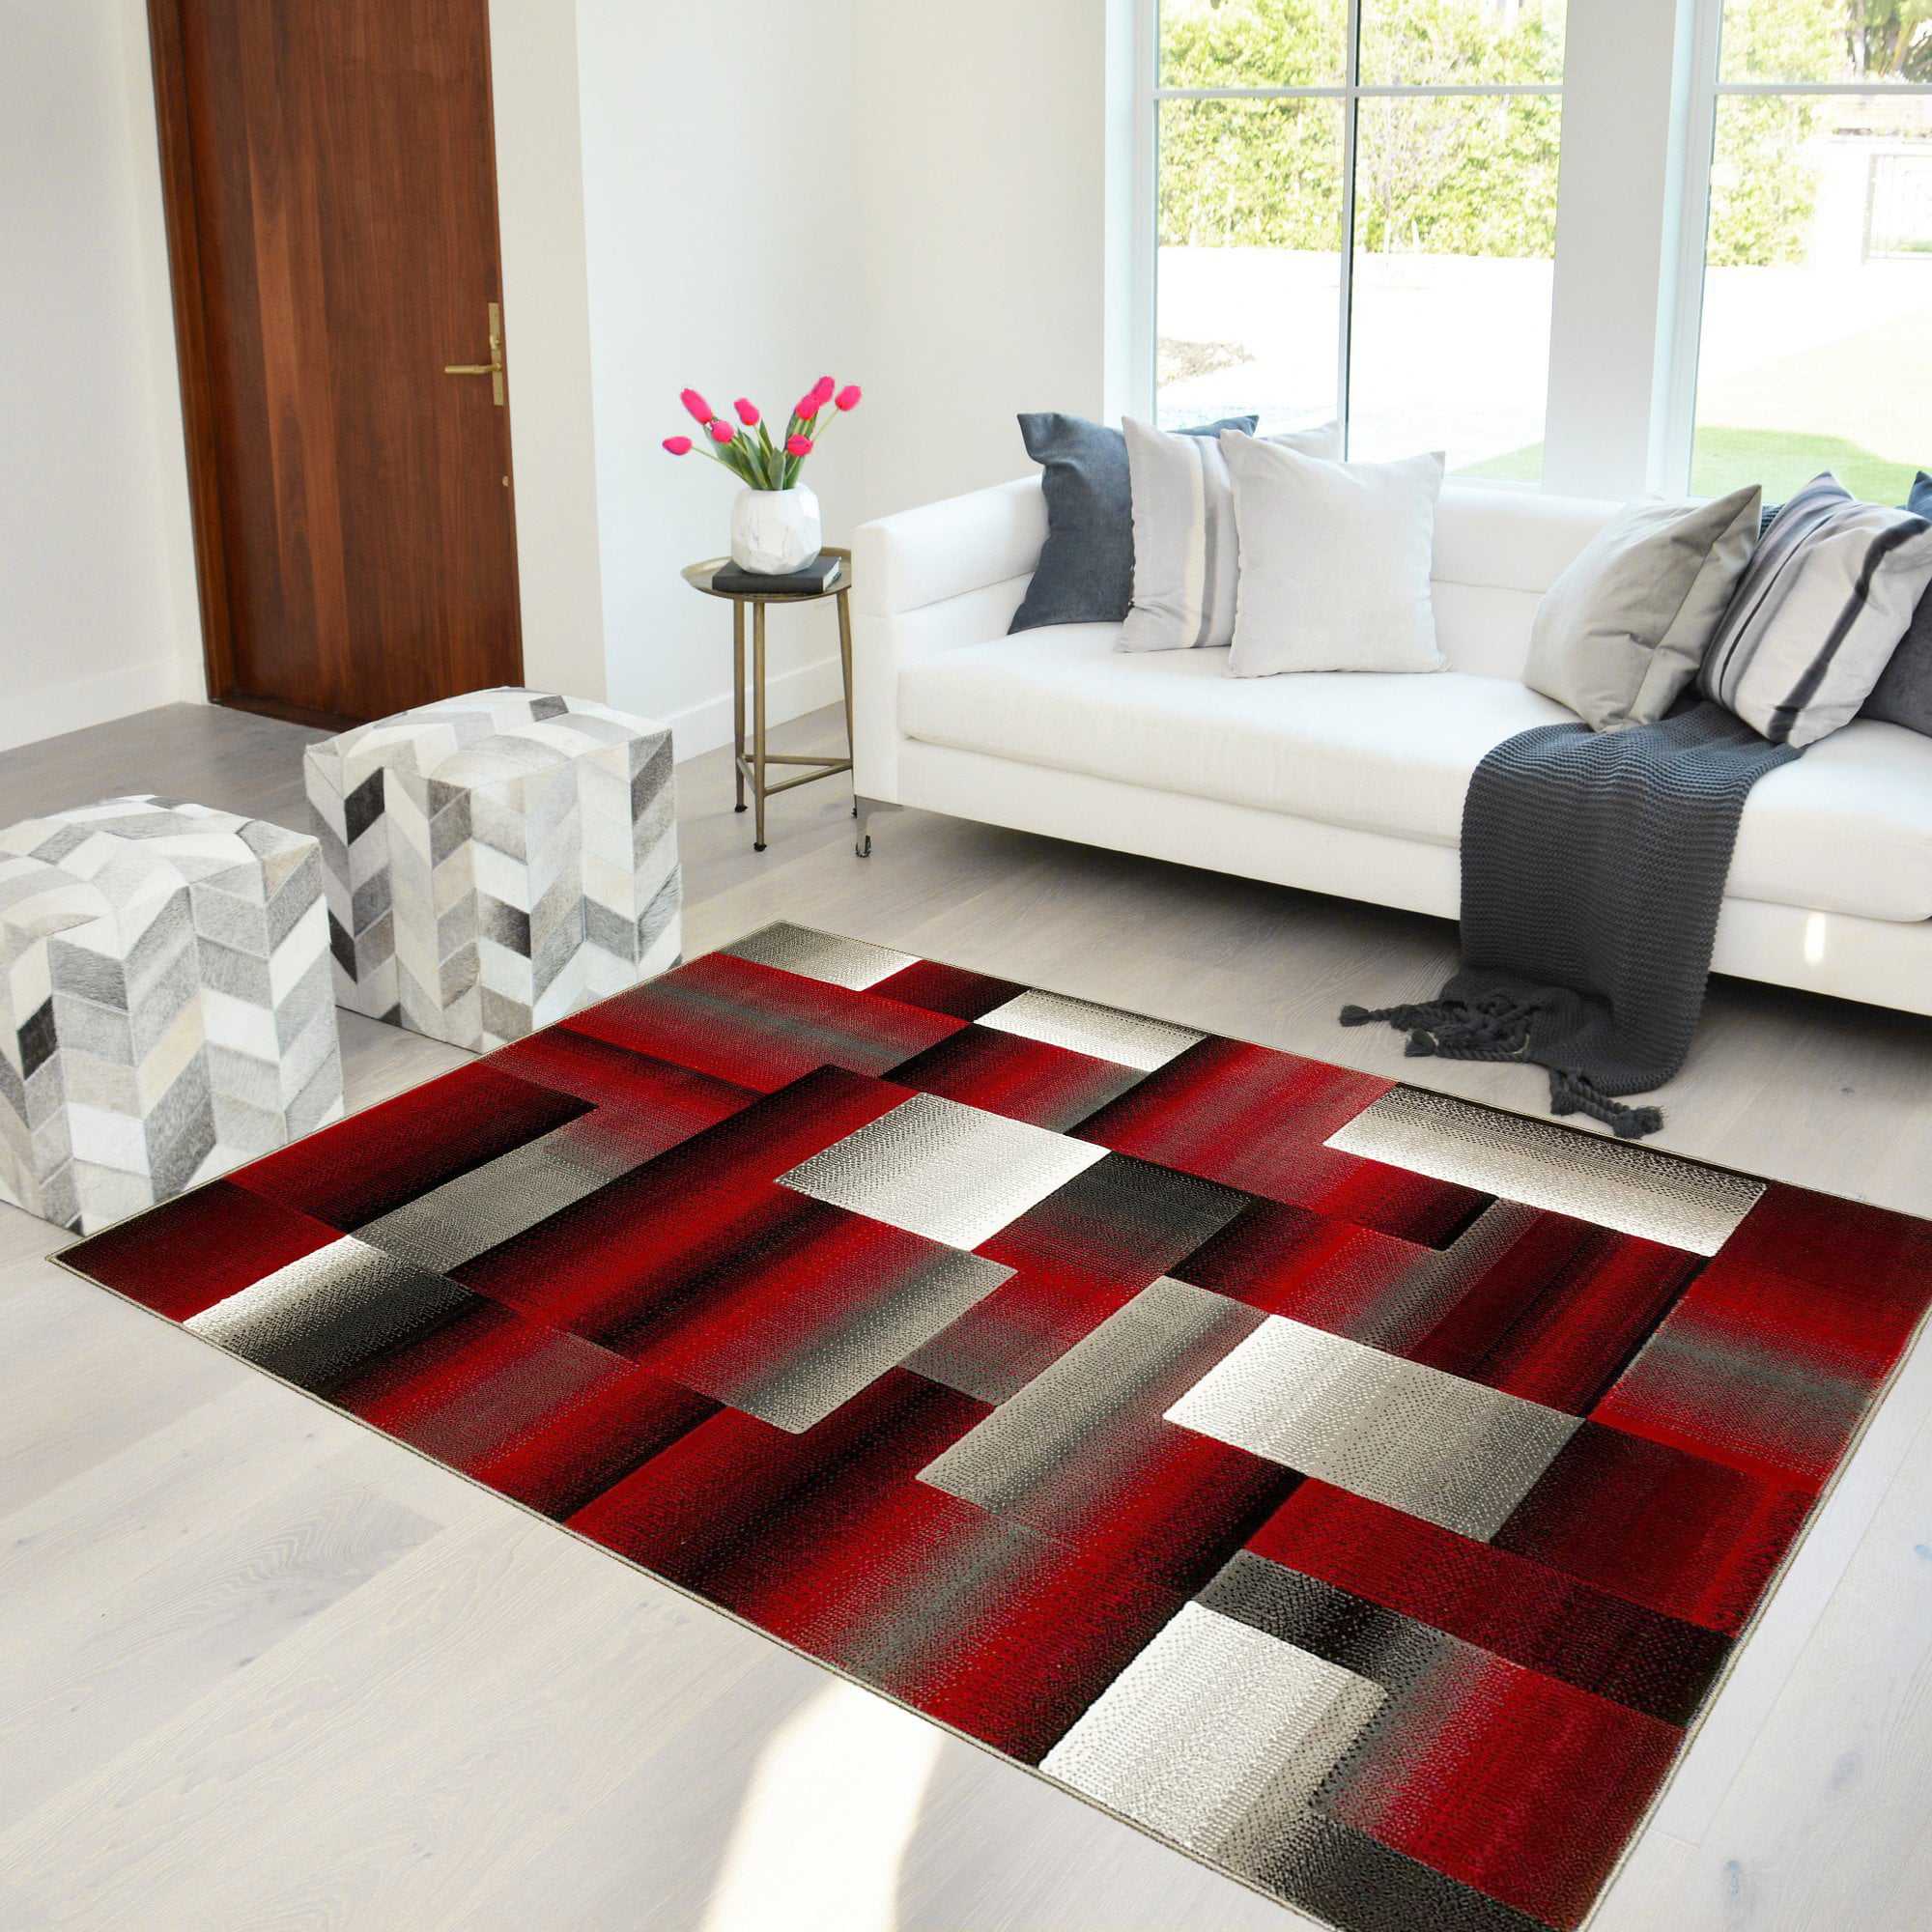 Handcraft Rugs Red Black Gray Abstract Geometric Modern Squares Pattern Area Rug 5 Ft By 7 Ft Walmart Com Walmart Com